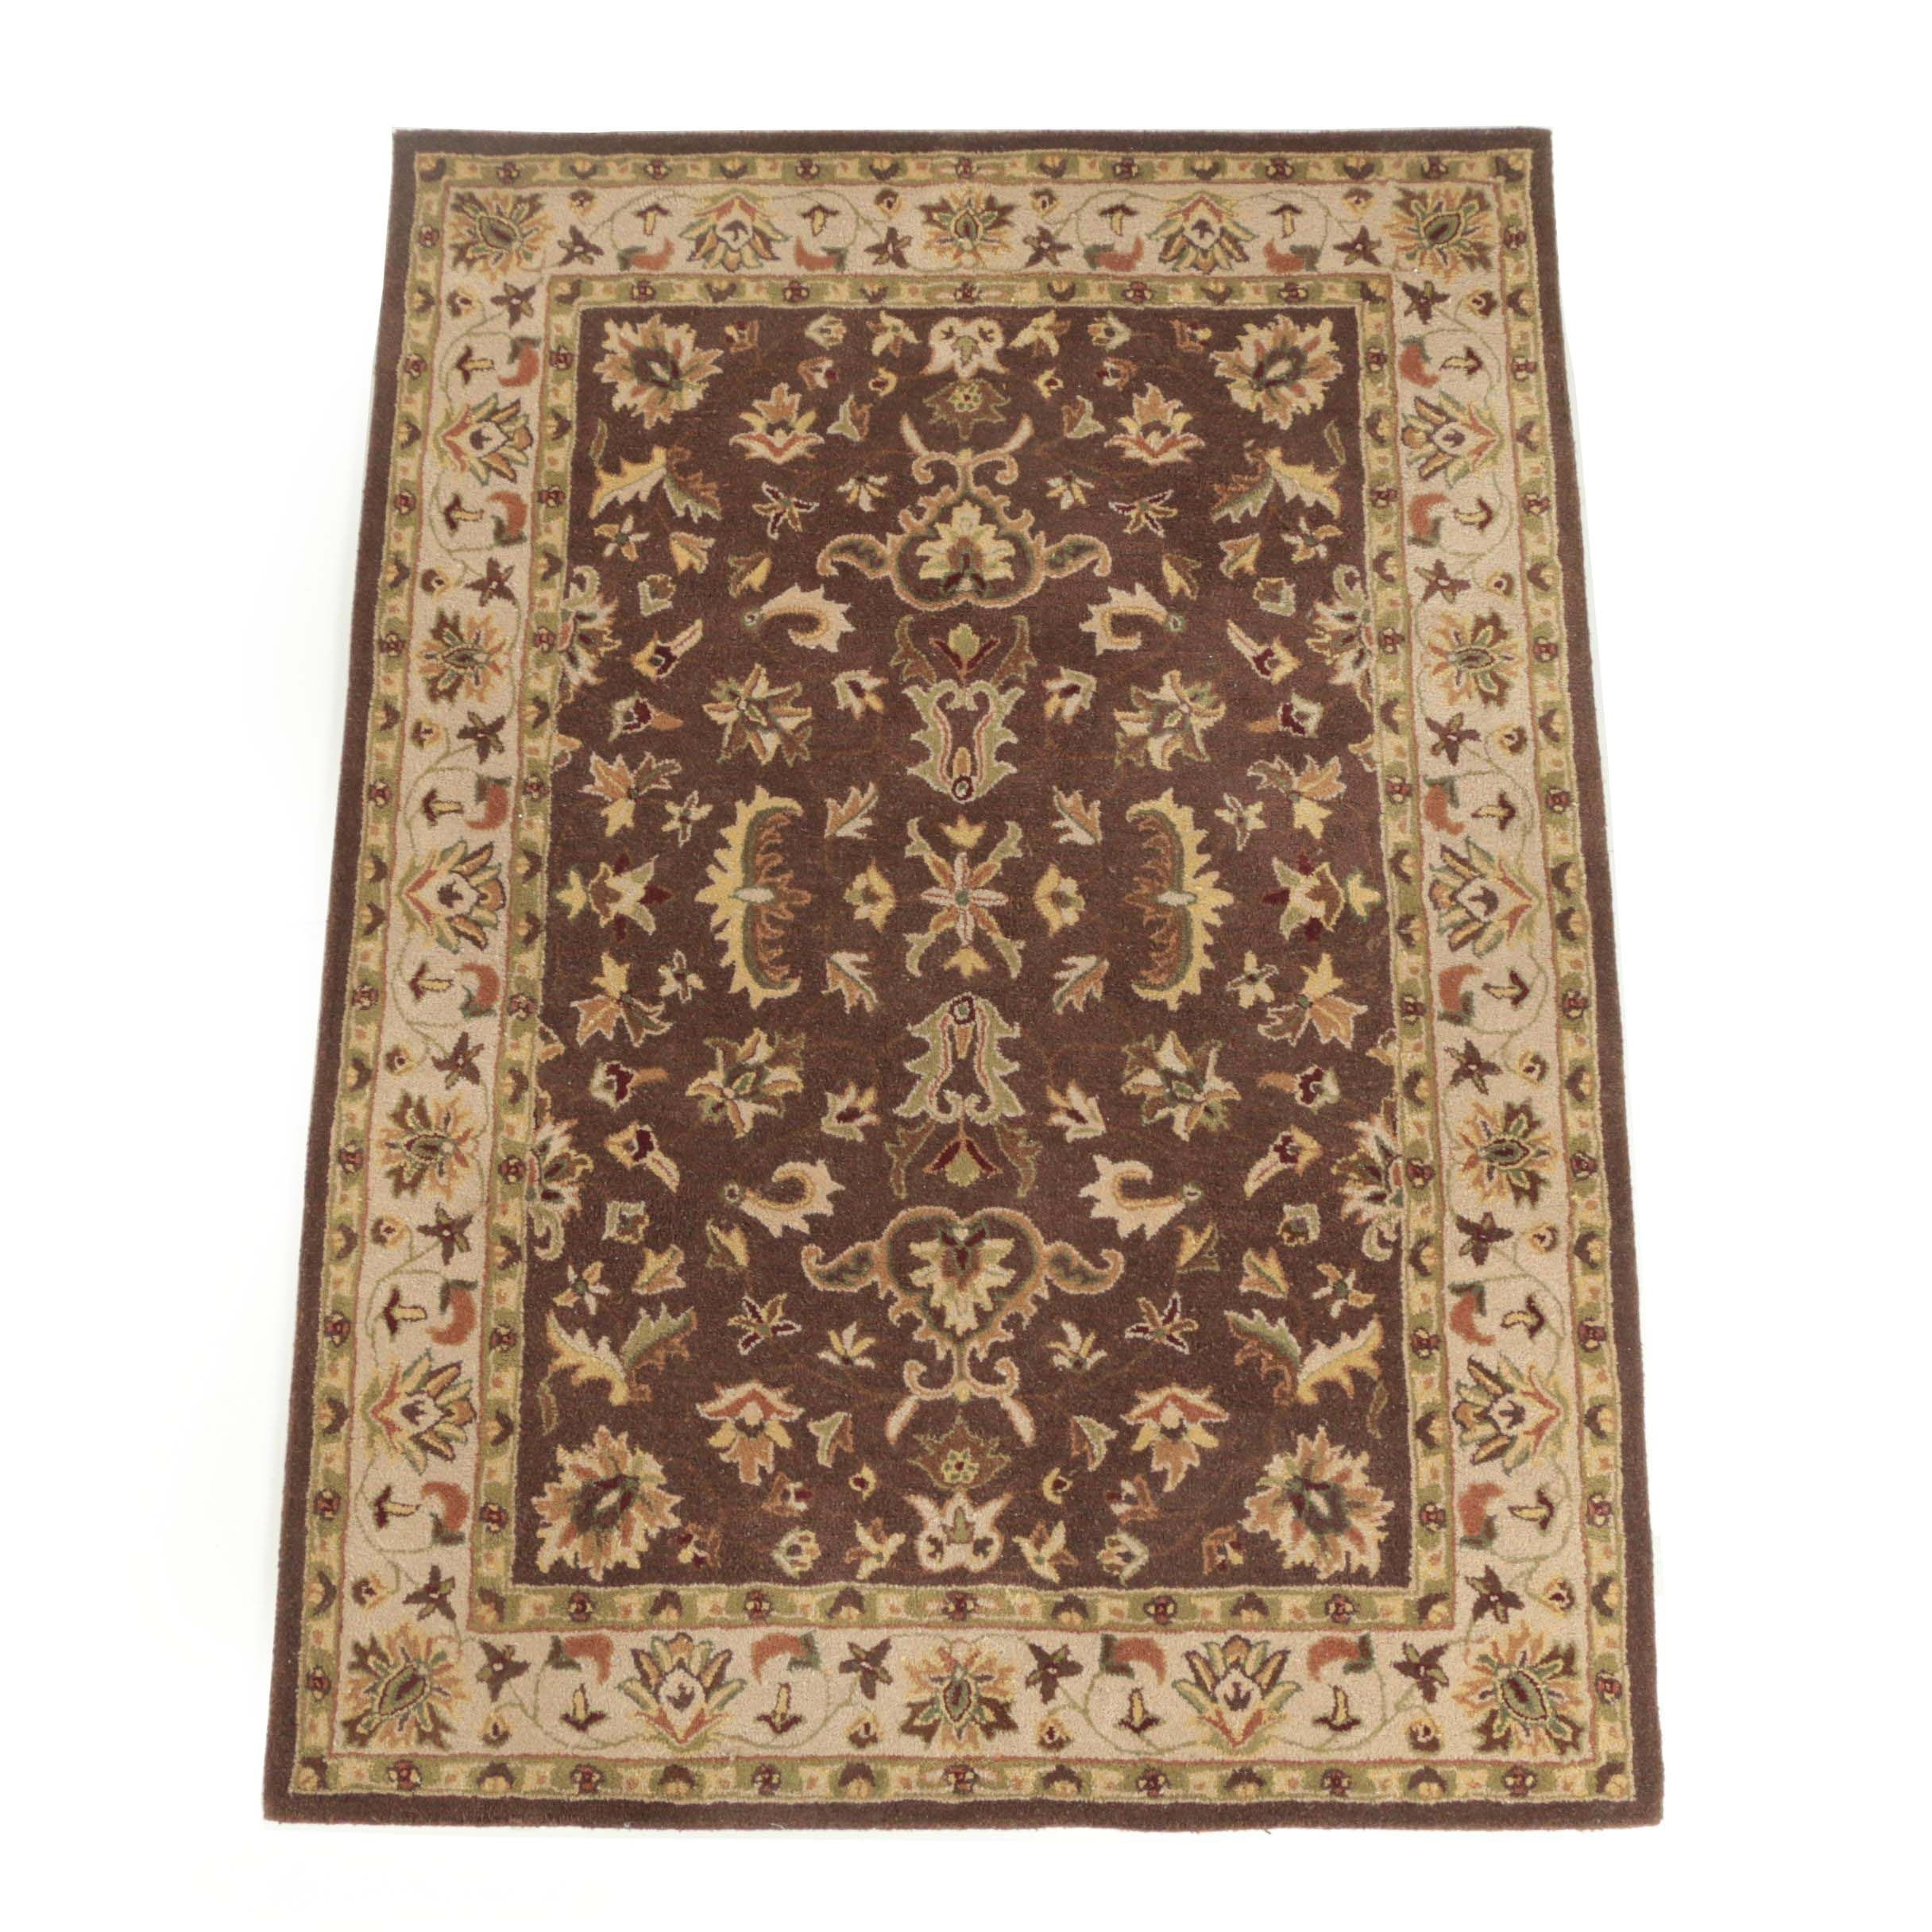 "Hand-Tufted Indian ""Agra"" Wool Area Rug by Heritage Unlimited"